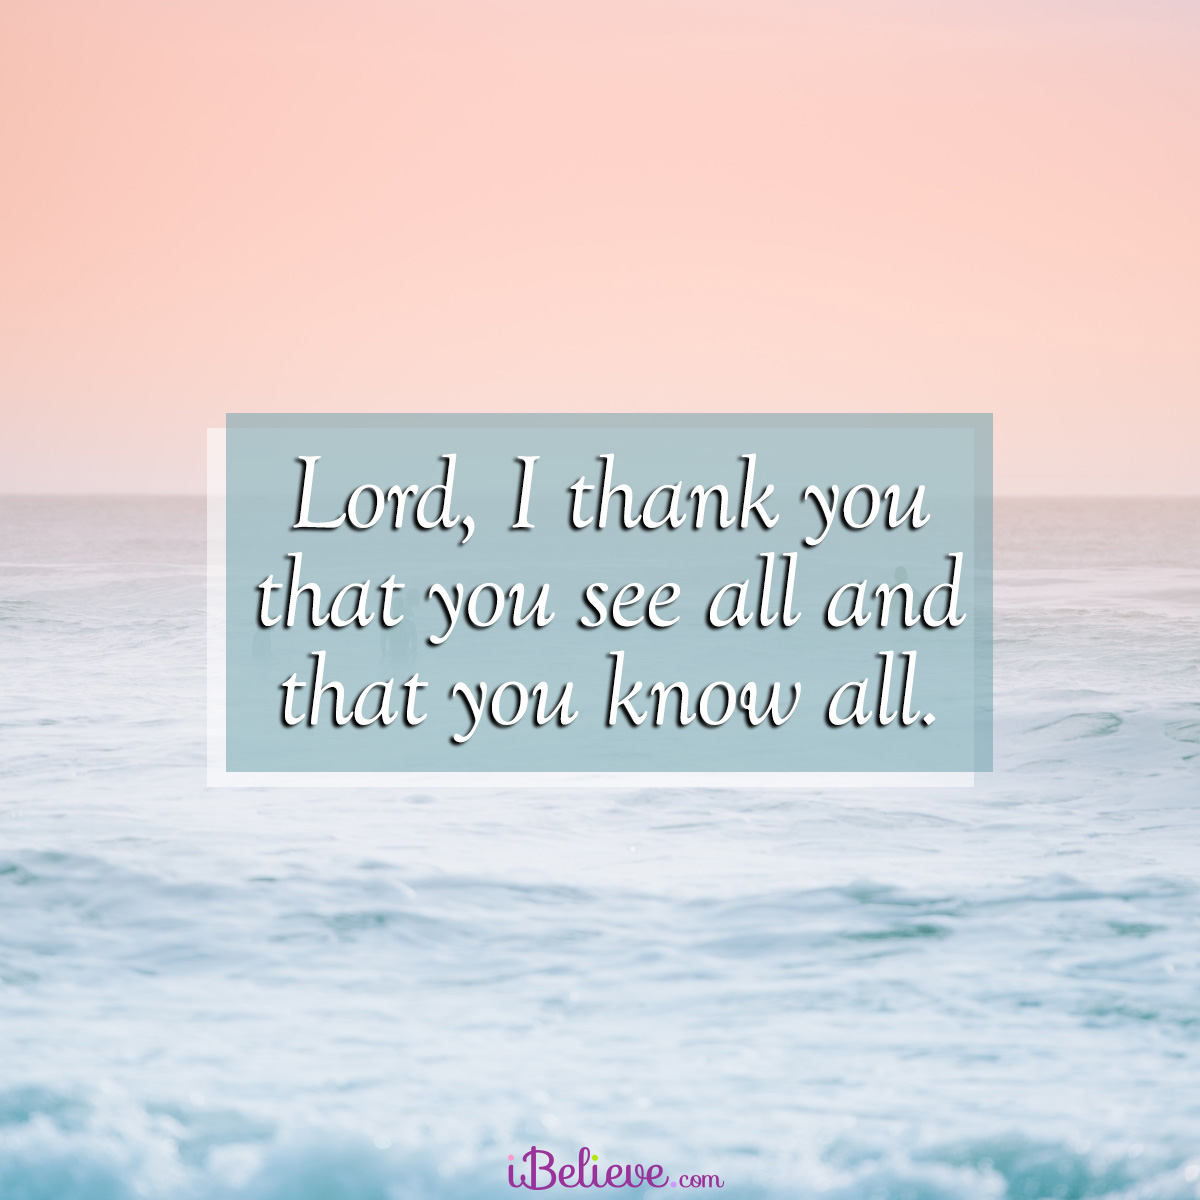 The Lord sees all, inspirational image